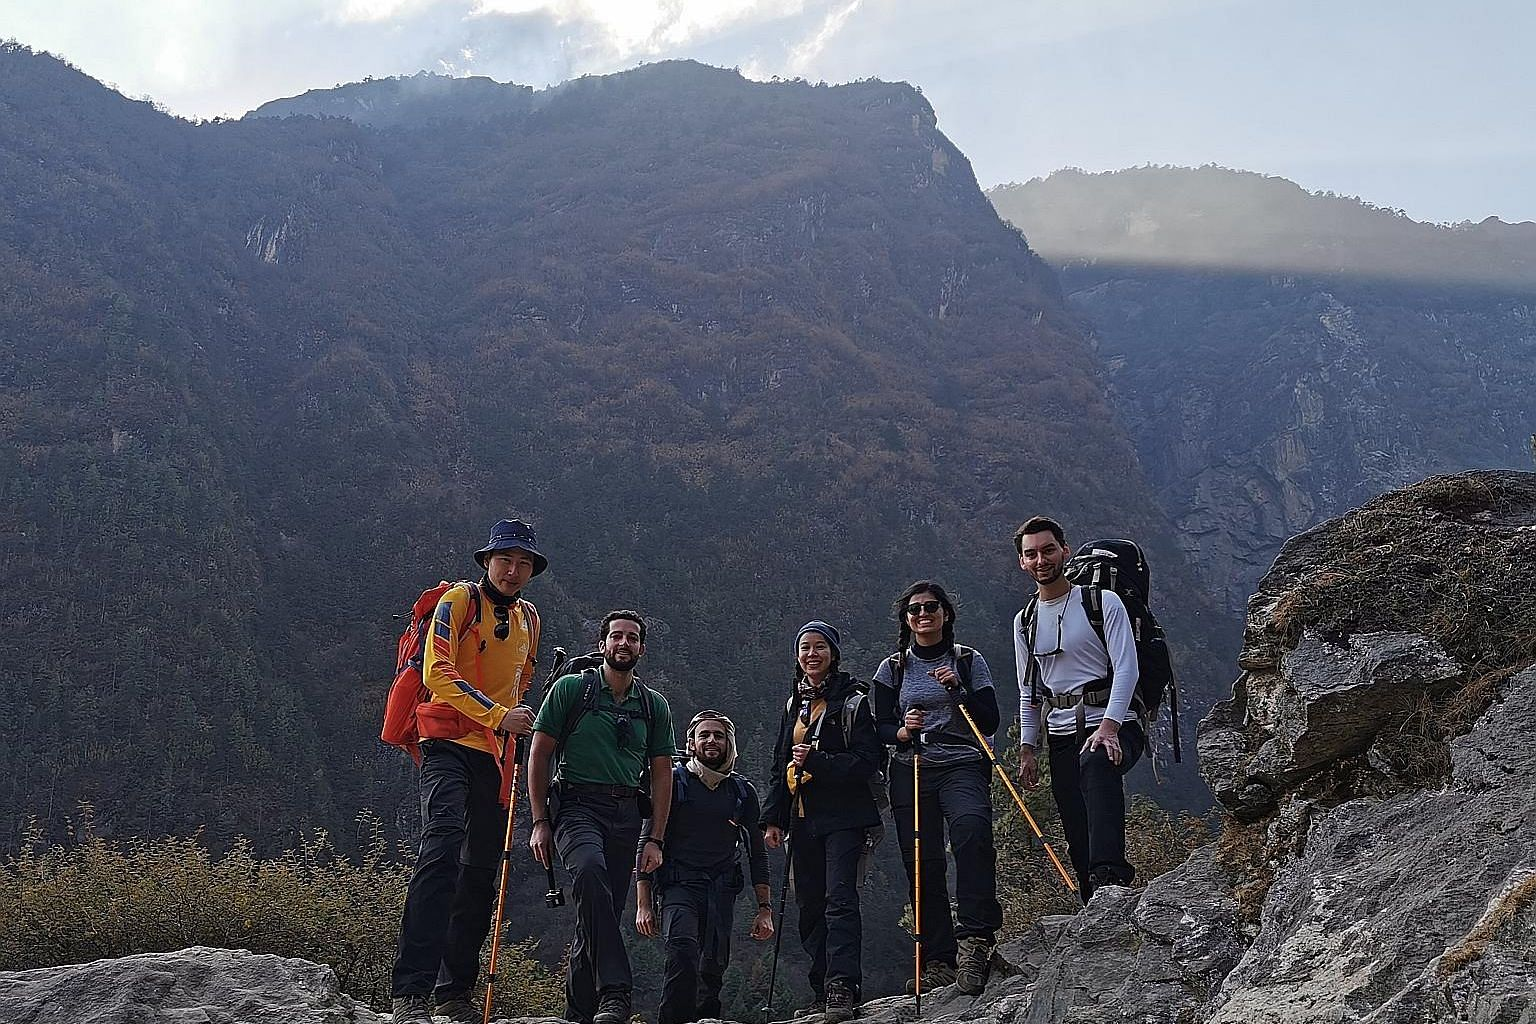 (From left) Mr Mcrid Wang, Mr Enrico Viora, Mr Alhasan Alkaff, Ms Napath Lertpinyopast, Ms Soyena Dhakal and Mr Xavier Janssen on day two of their trek last month to the Mount Everest base camp.